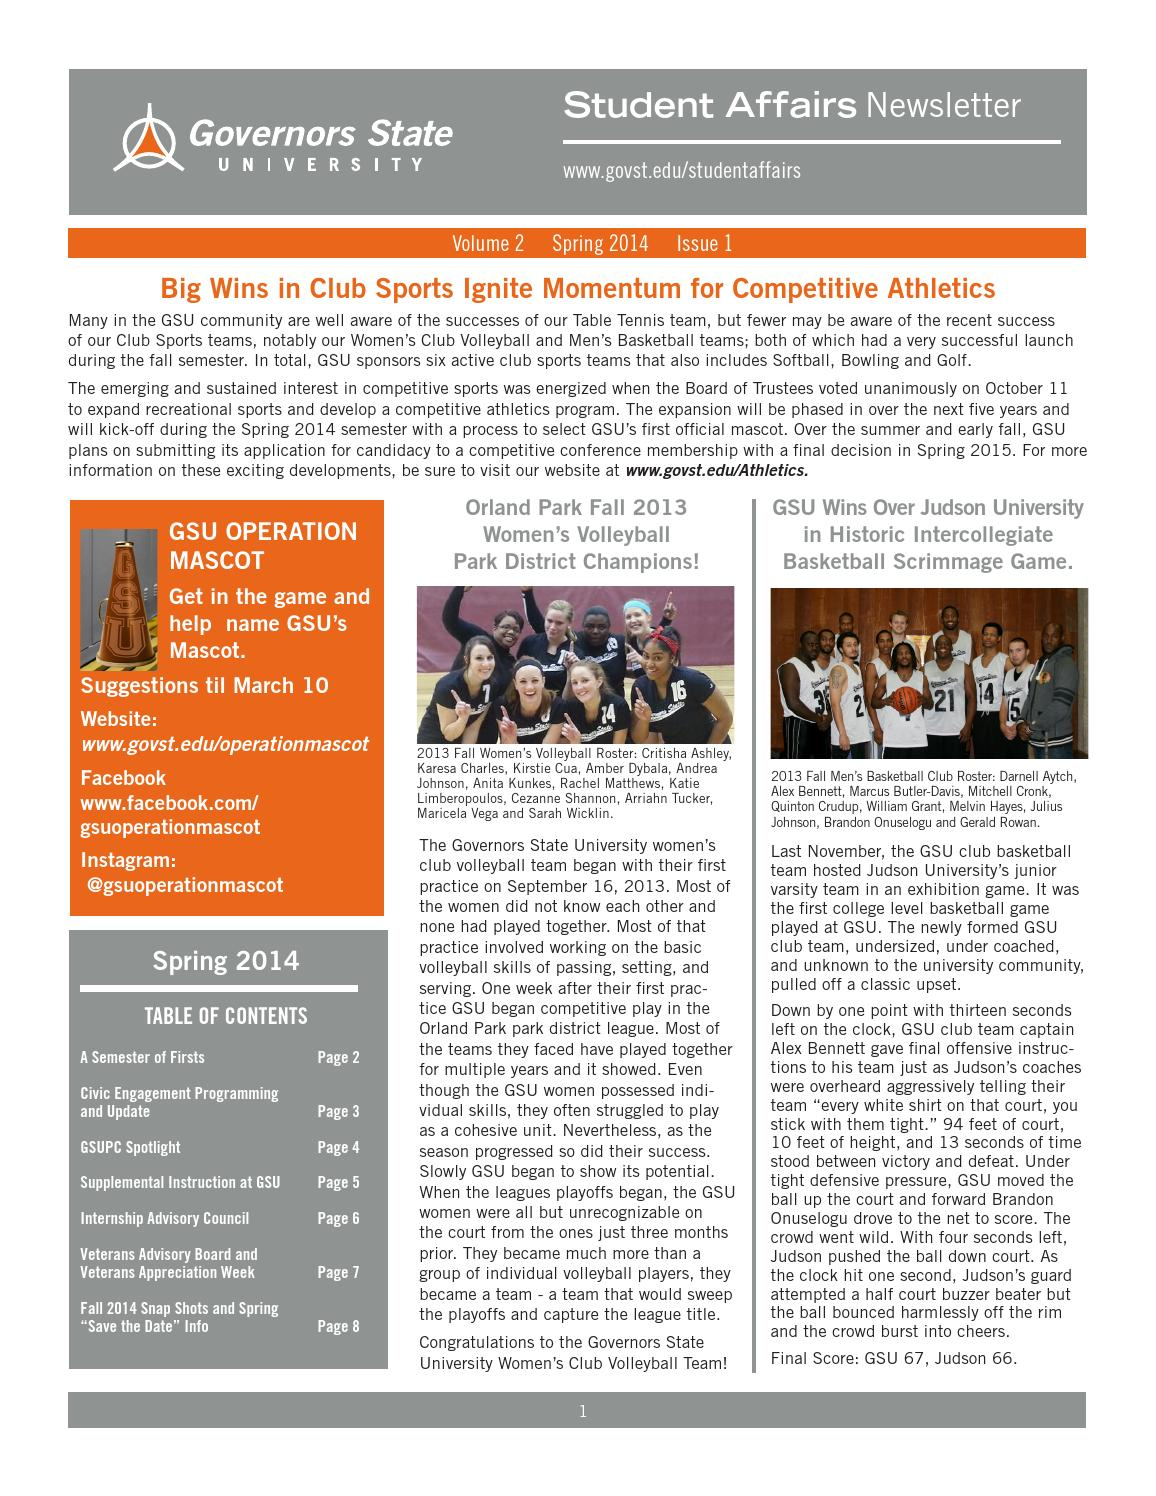 Student Affairs Spring 2014 Newsletter By Division Of Student